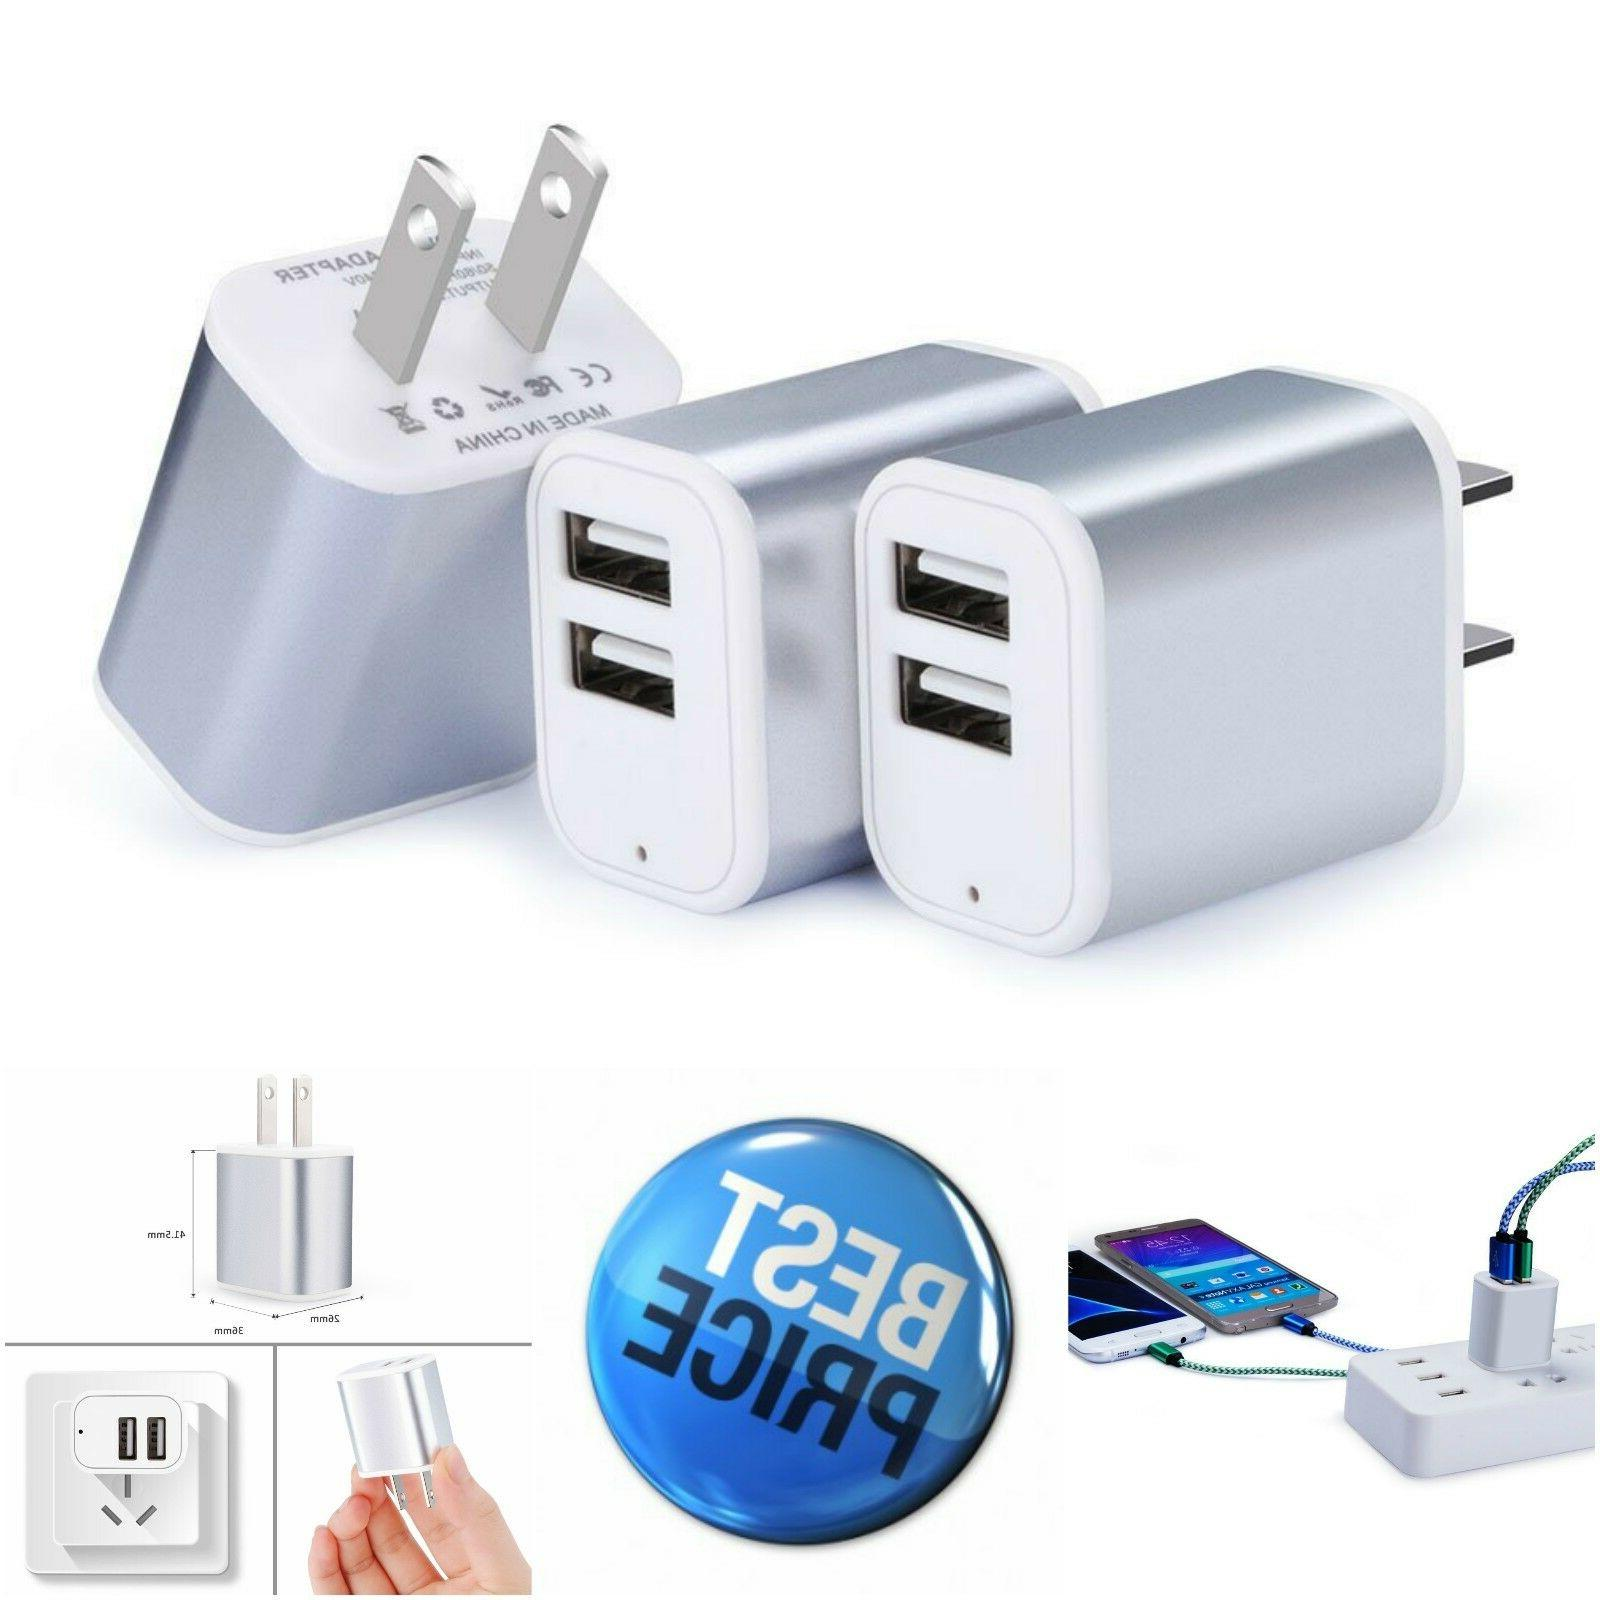 3 Pack Wall Charger USB Plug Dual Port Charging Block Fast C